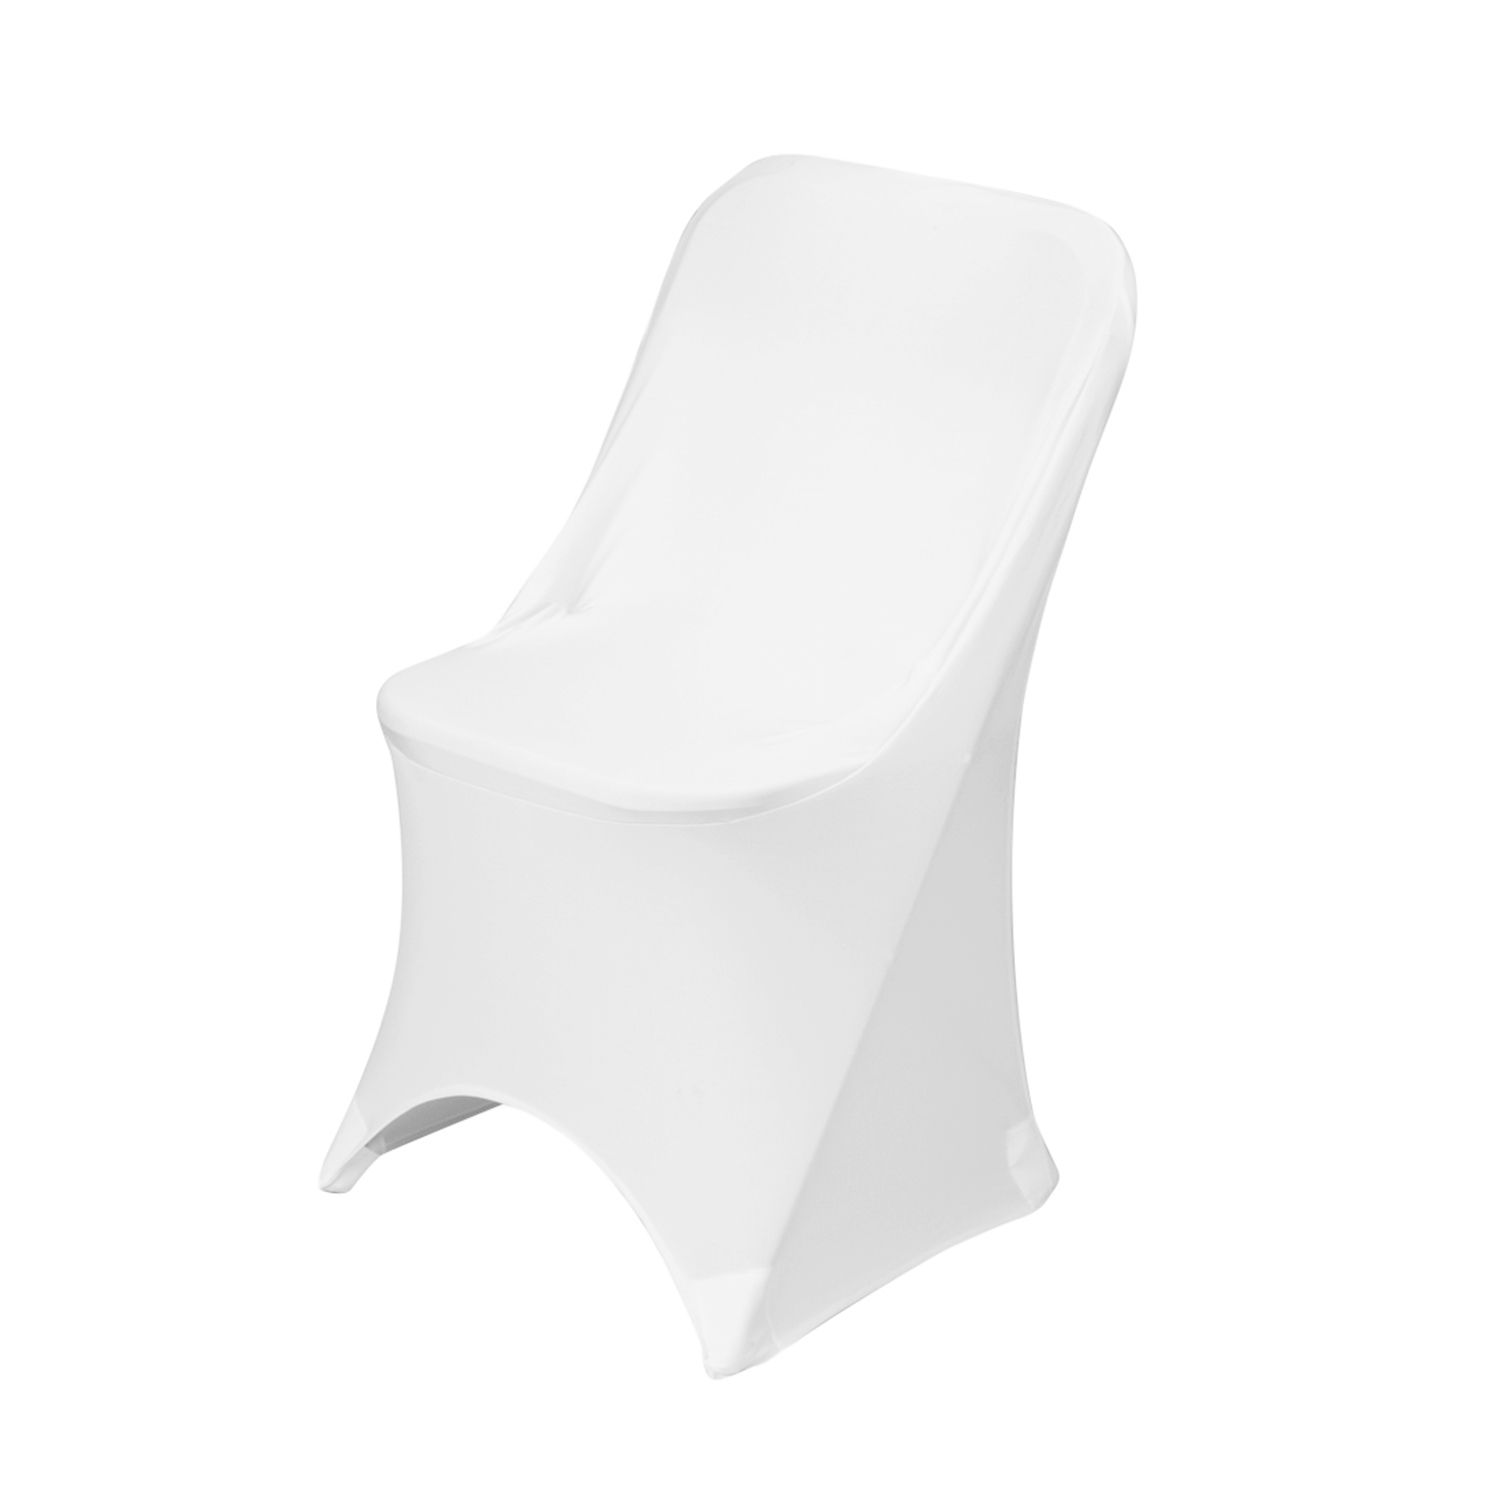 metal chair covers display stand cover rentals orlando fun party fl white folding spandex